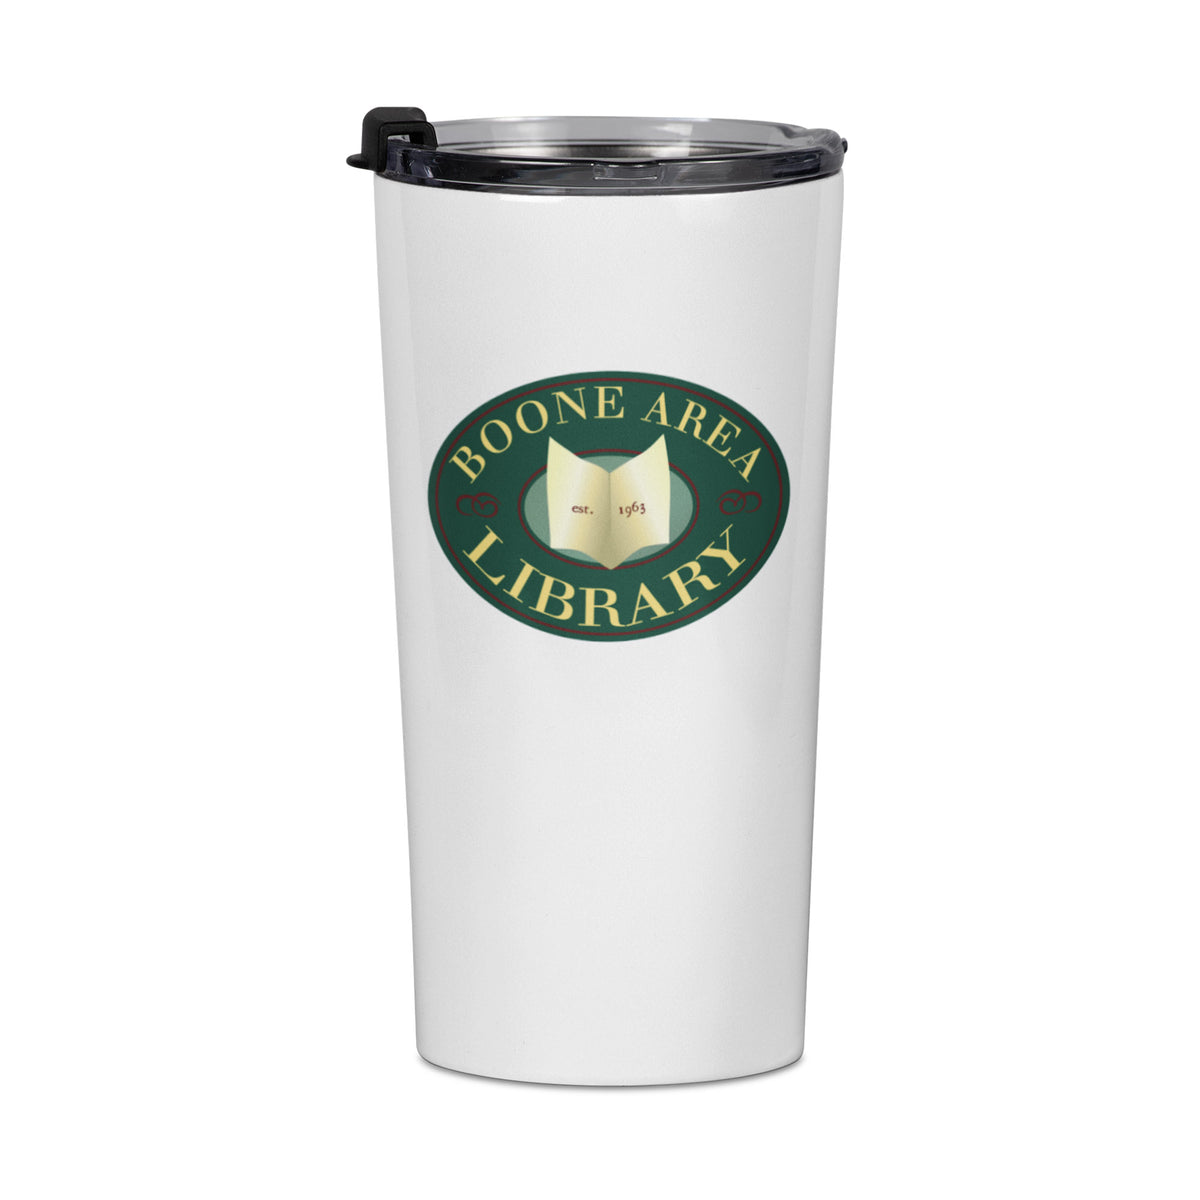 Boone Area Library We Support PA Travel Mug